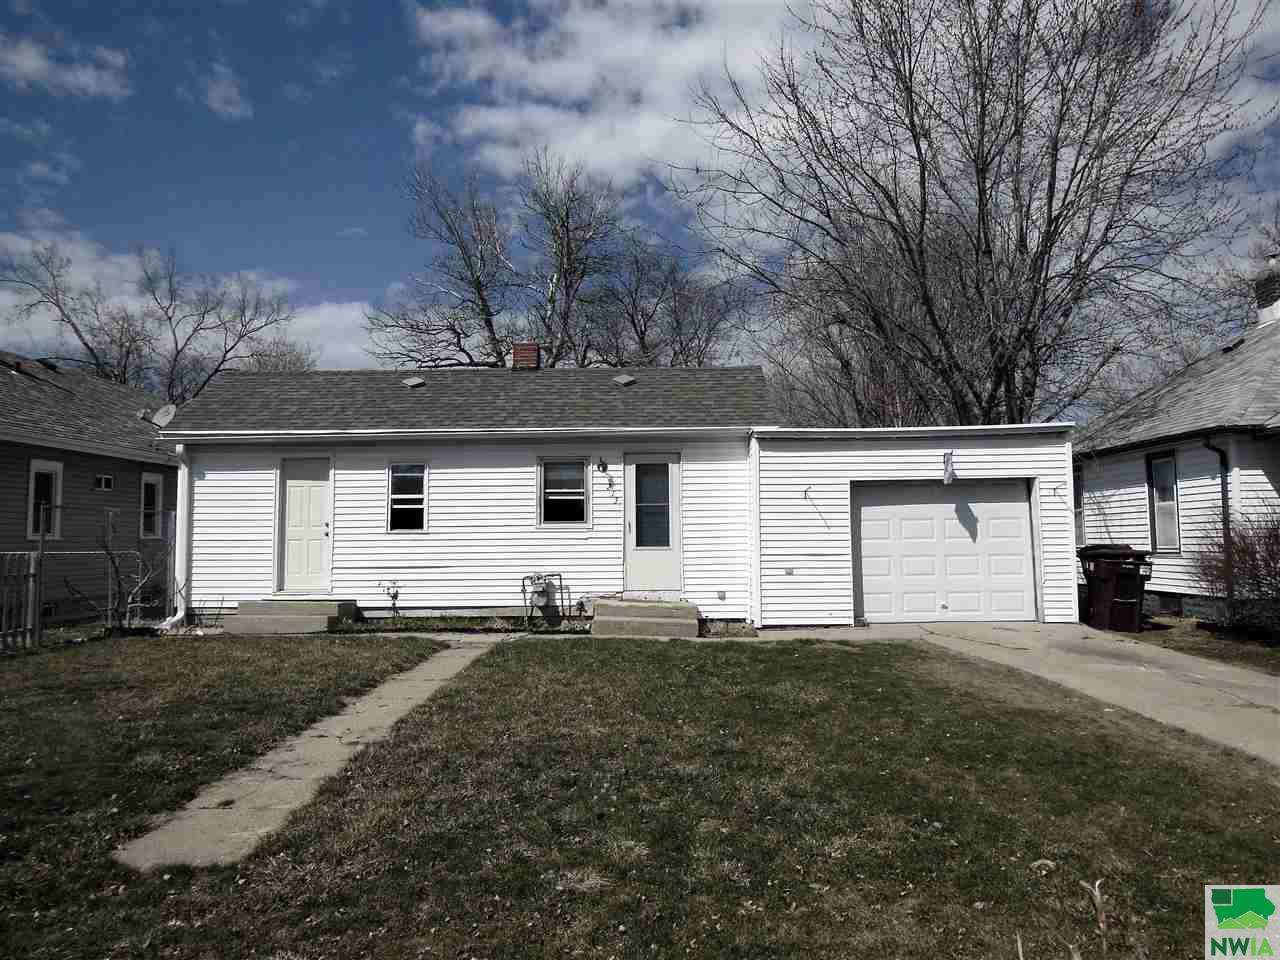 Property for sale at 213 East 30th St., South Sioux City,  NE 68776